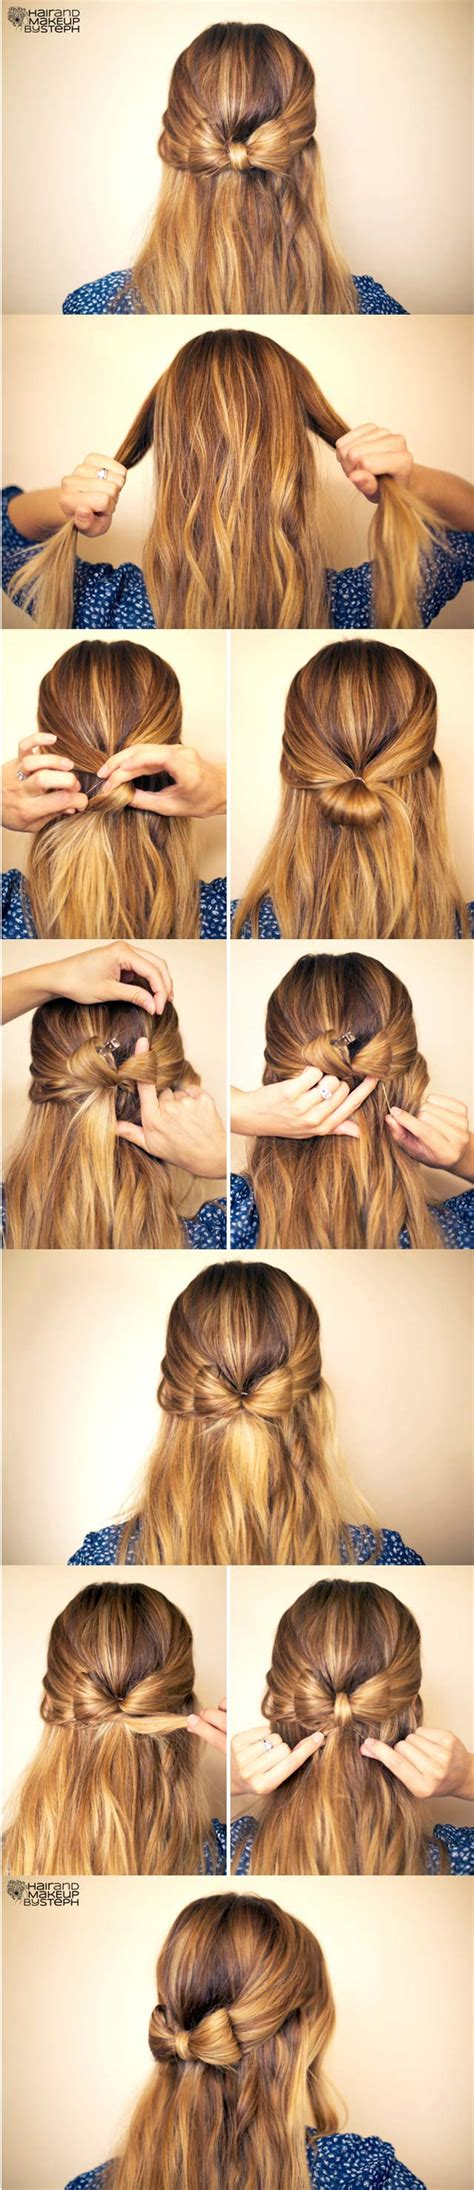 cute diy hairstyles easy cute quick easy hairstyles short hair hairtechkearney